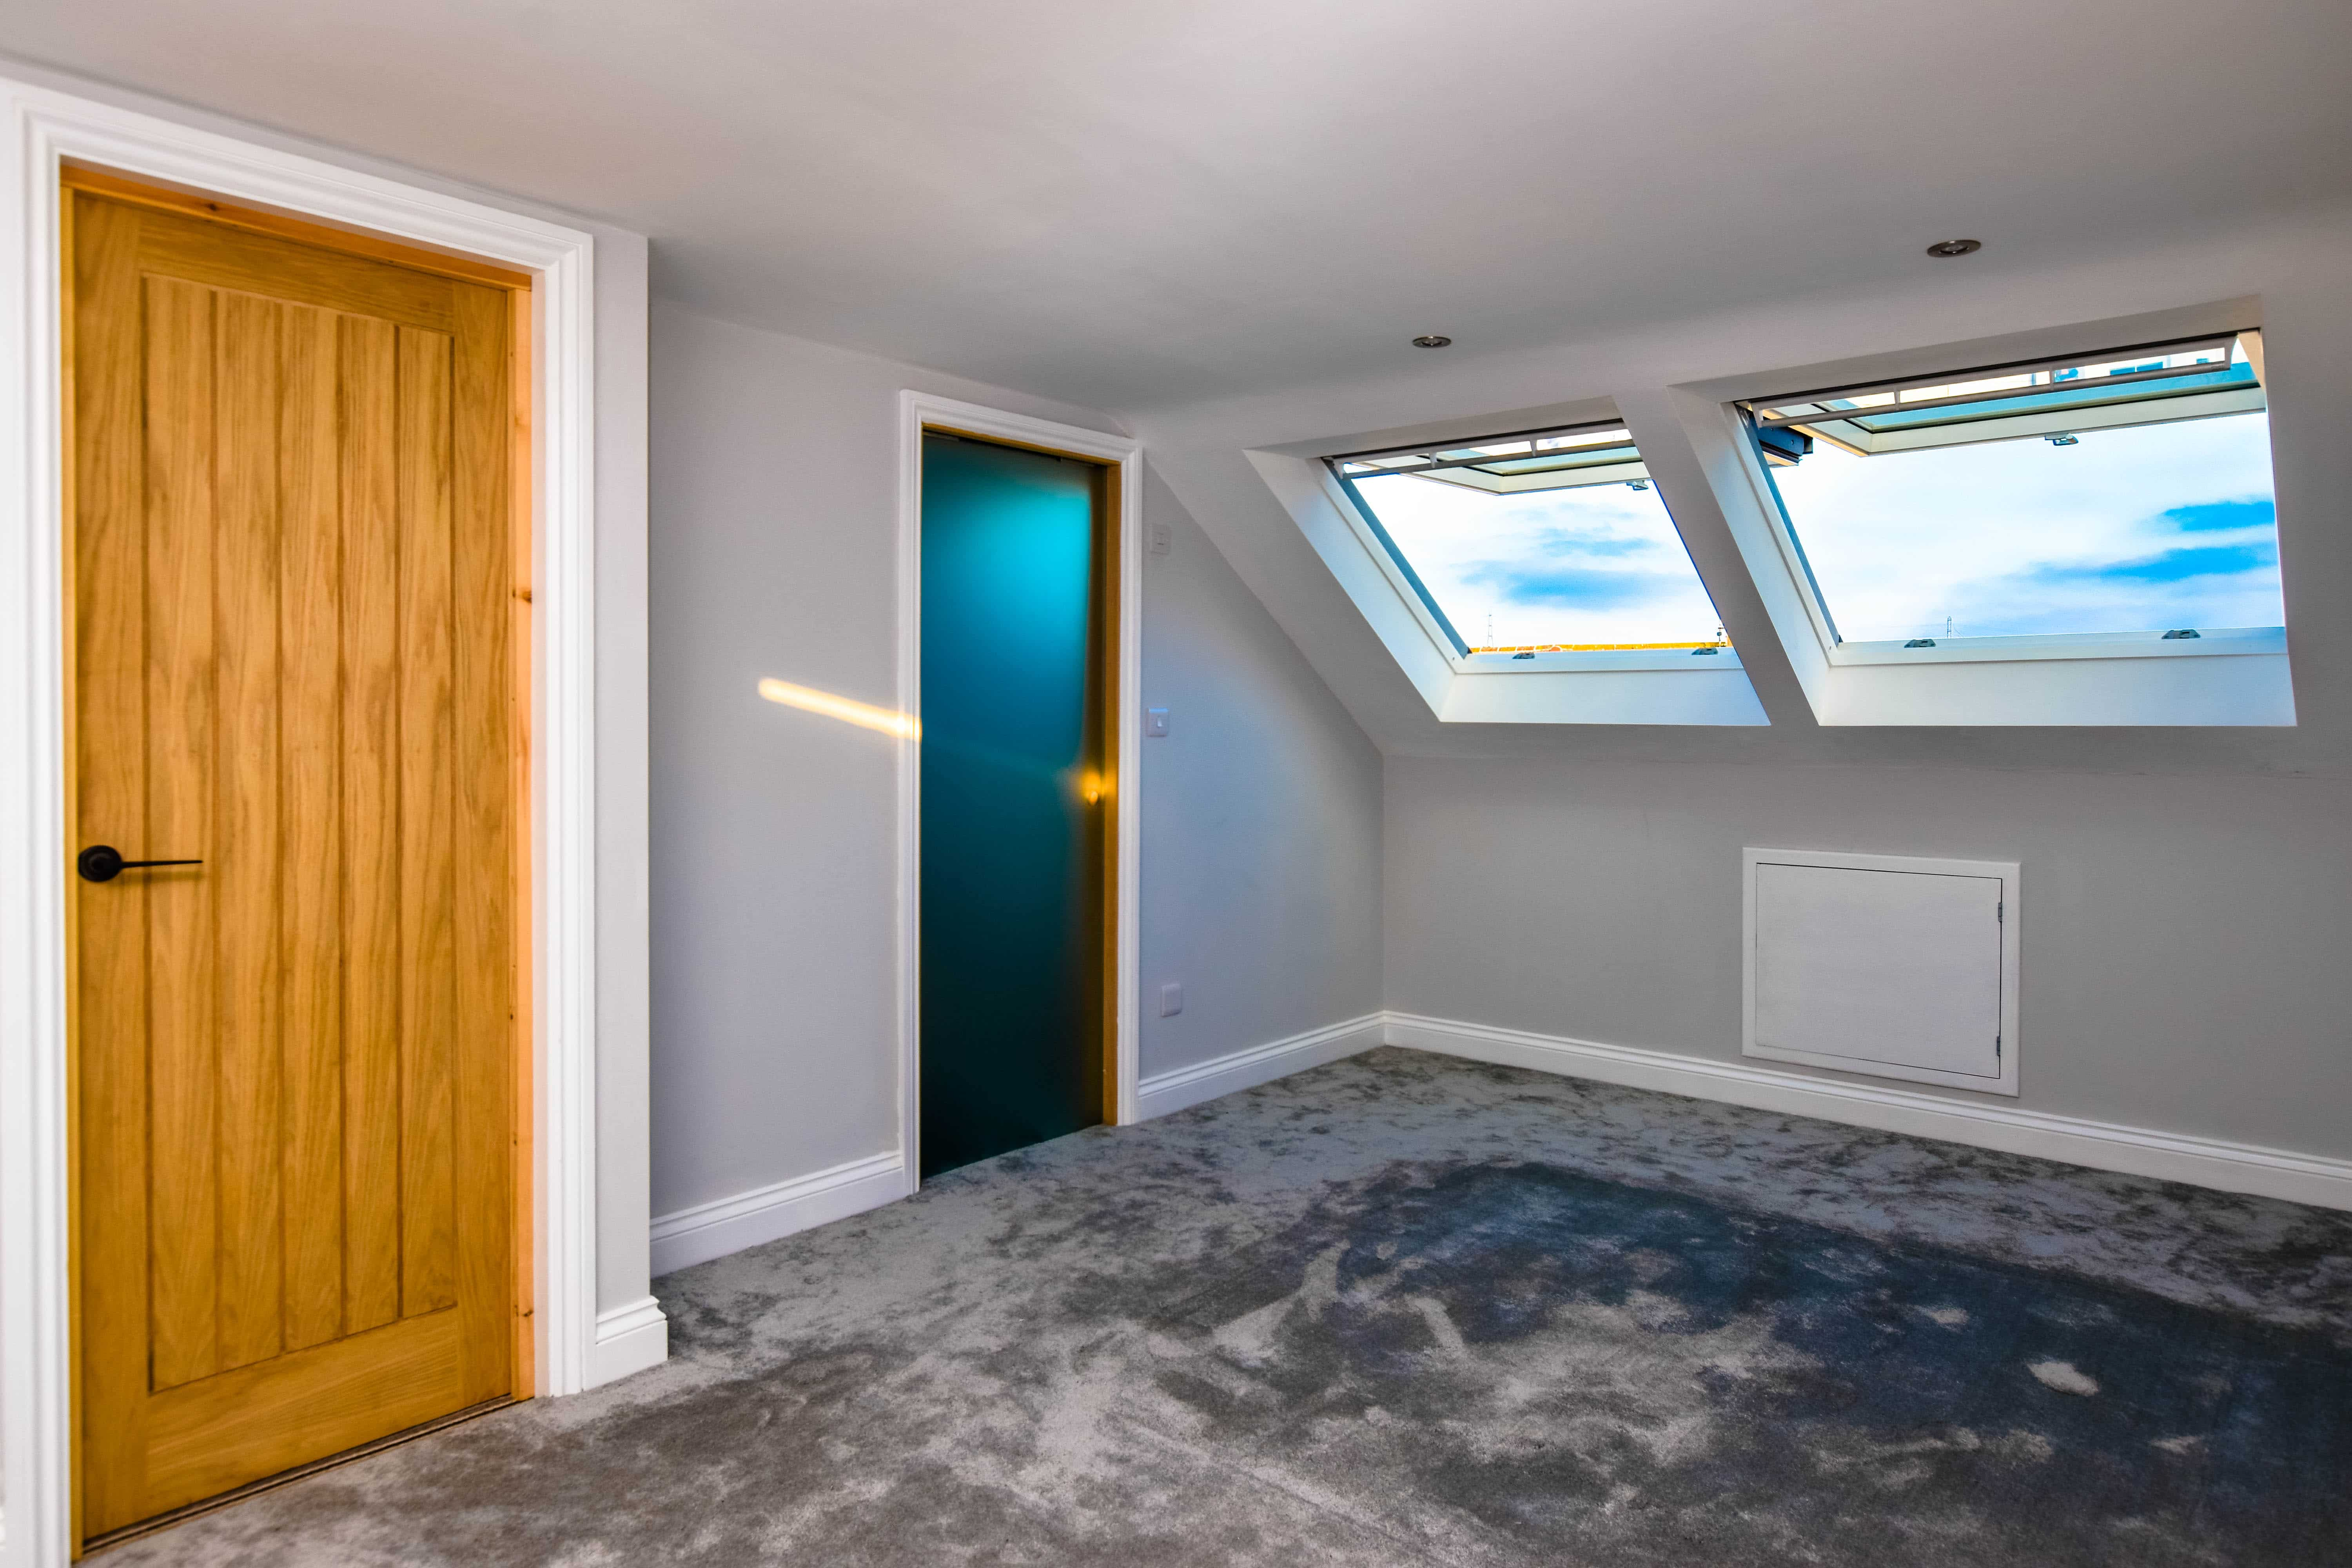 Loft conversion bedroom with two large velux windows, oak door and sliding glass door to the ensuite